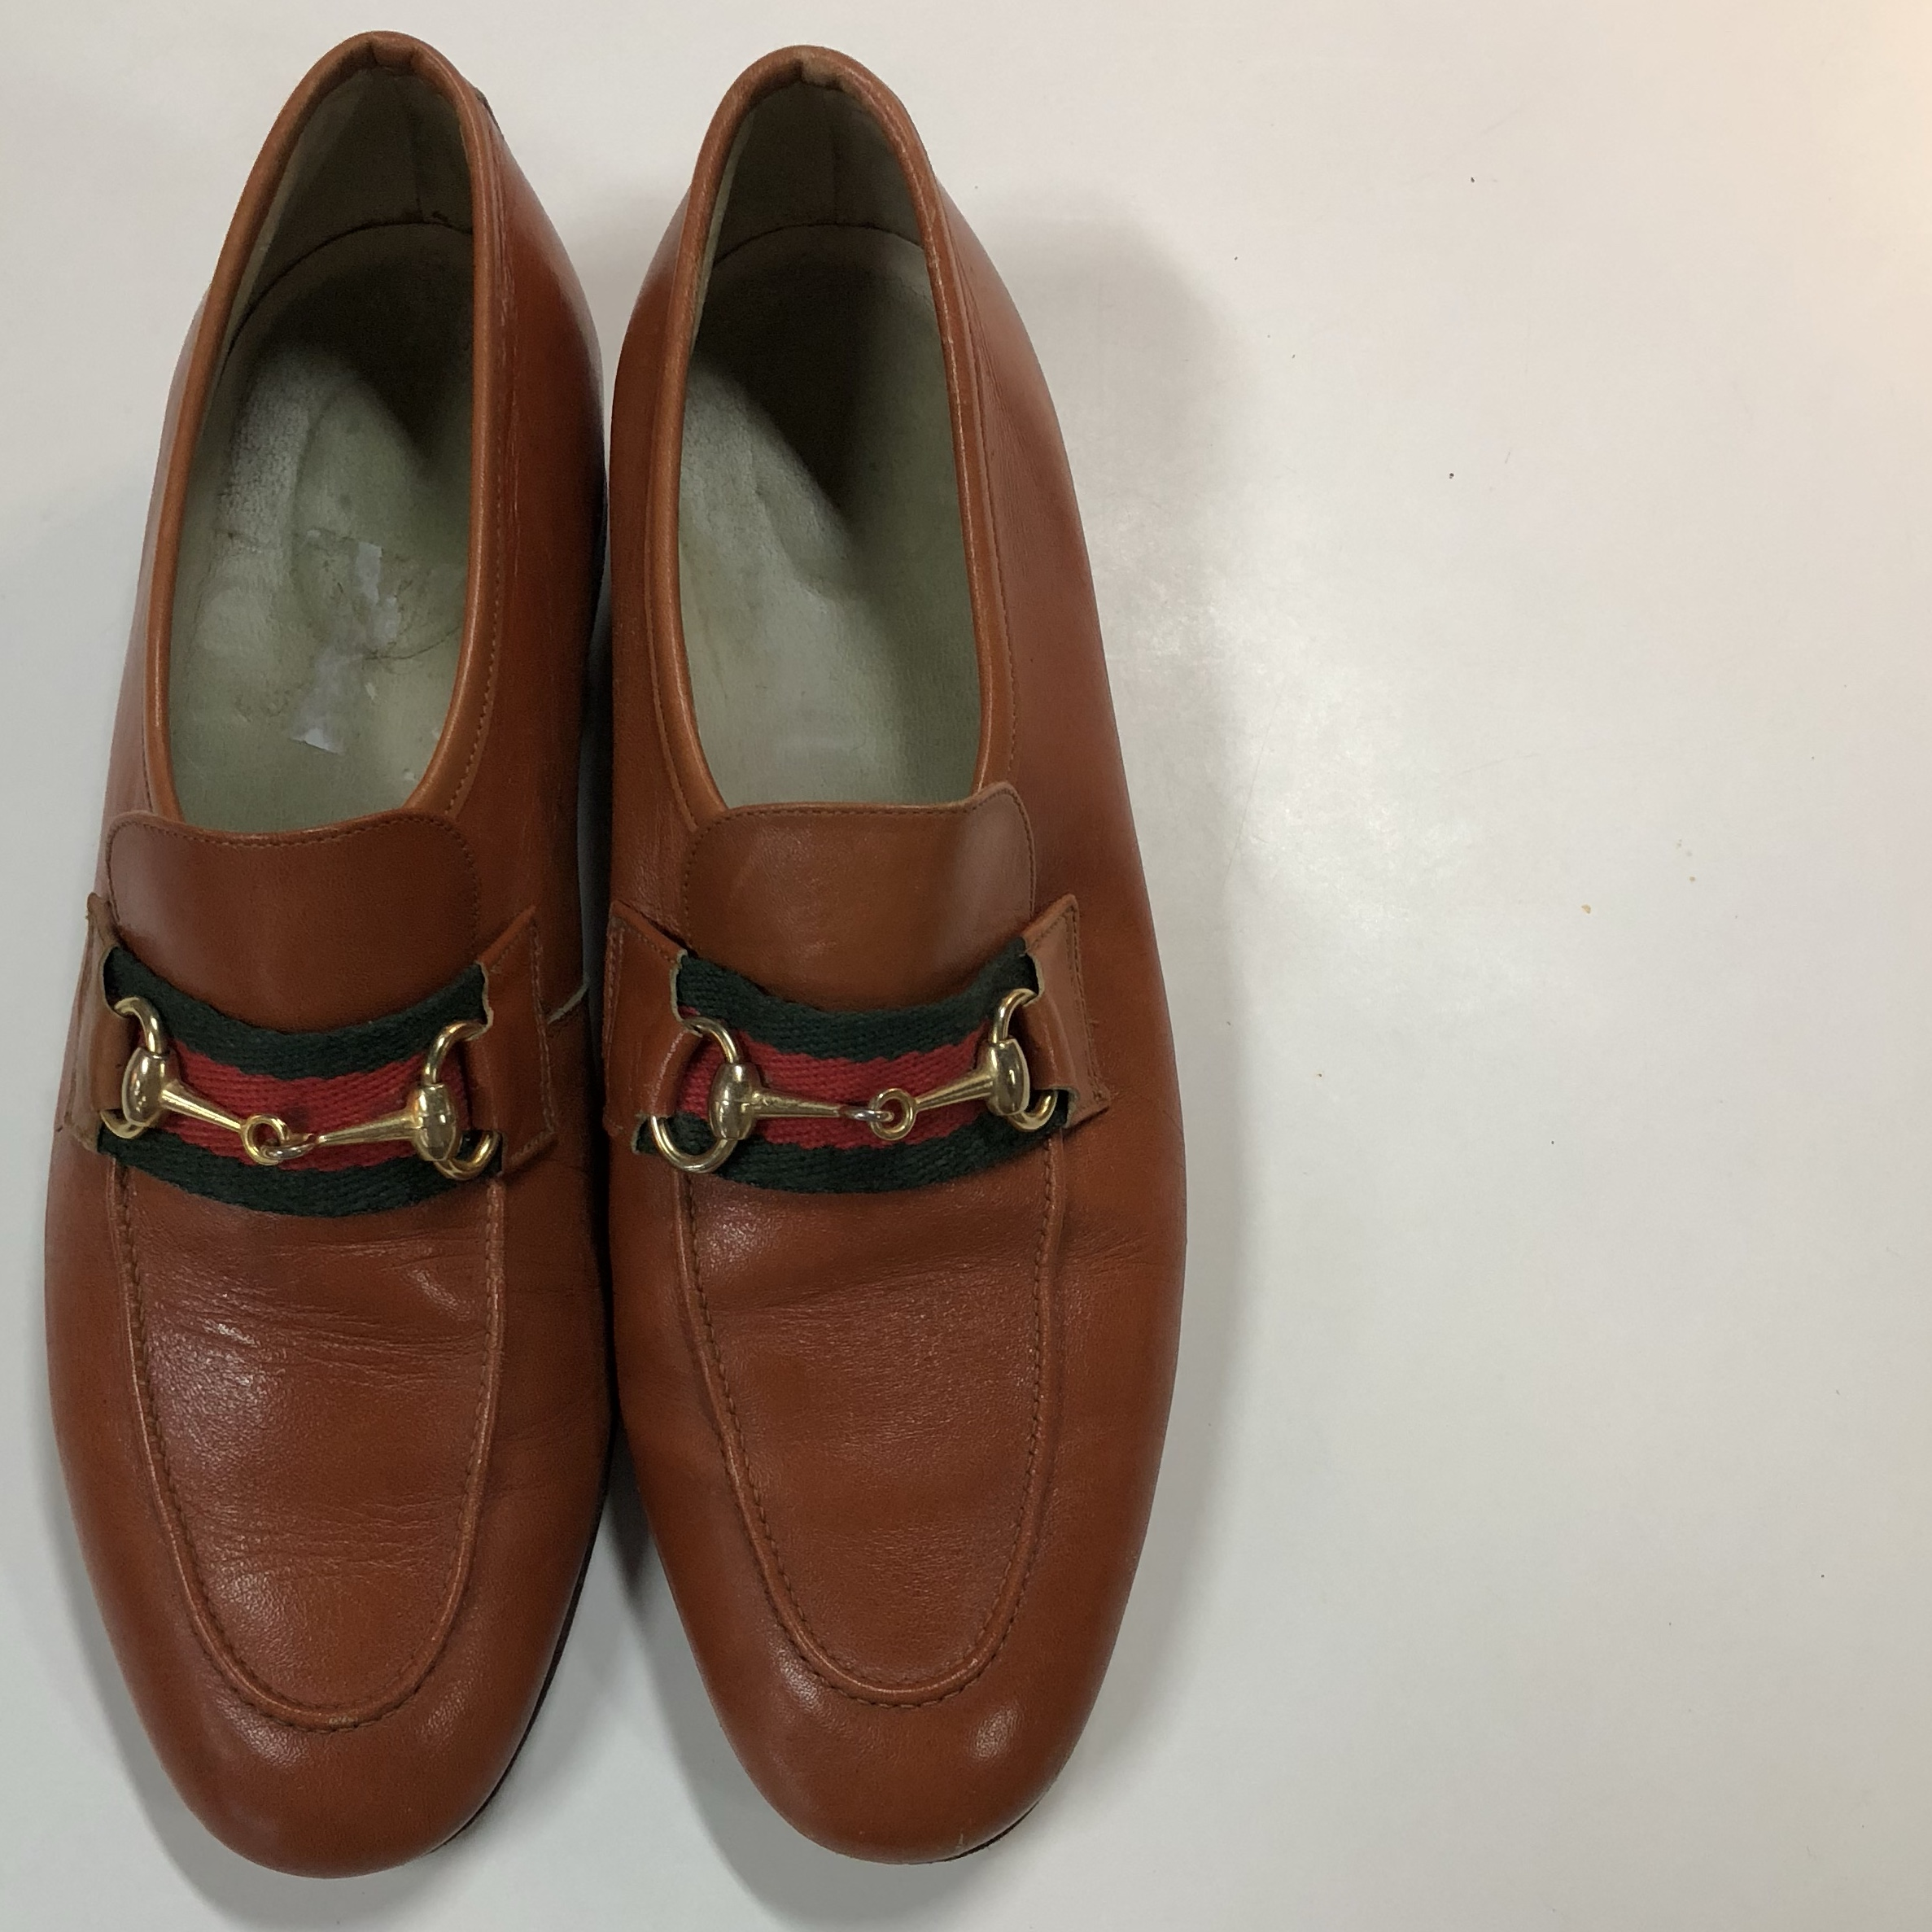 c471caaf9 frenchfriedvintage. Knoxville, United States. Vintage Gucci men's leather  loafers Tan Brown Red and green ...